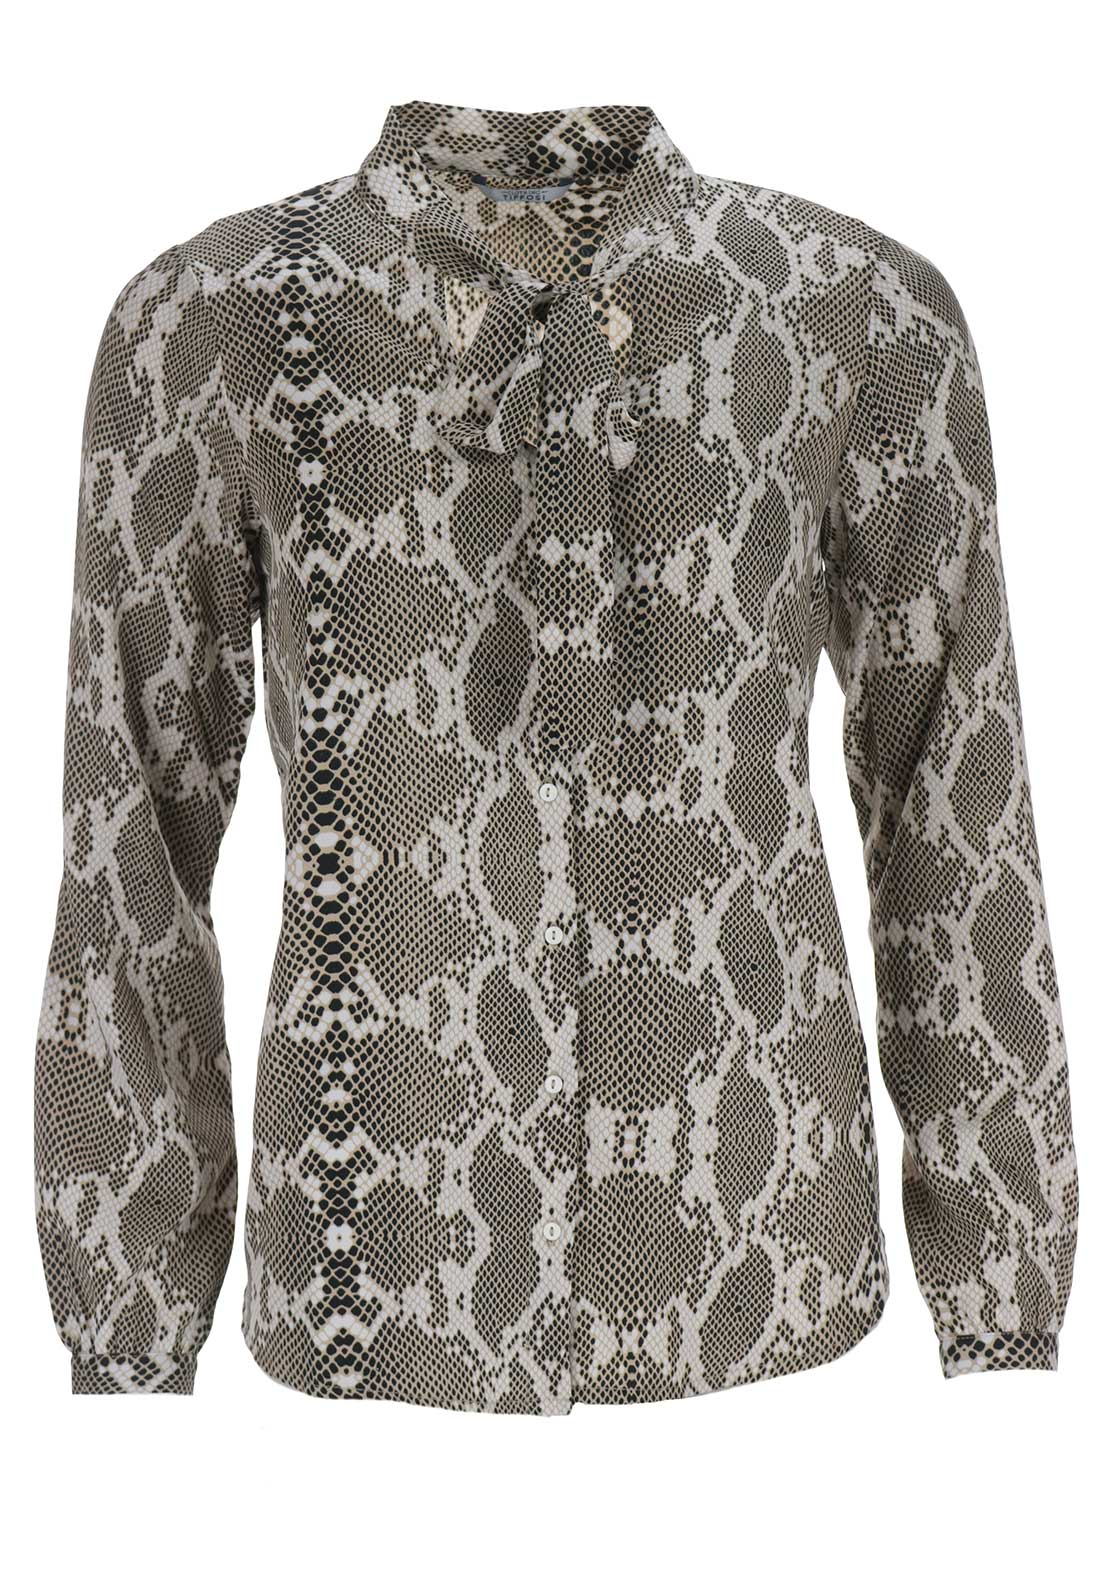 Tiffosi Womens Saanca Reptile Pussybow Blouse, Beige